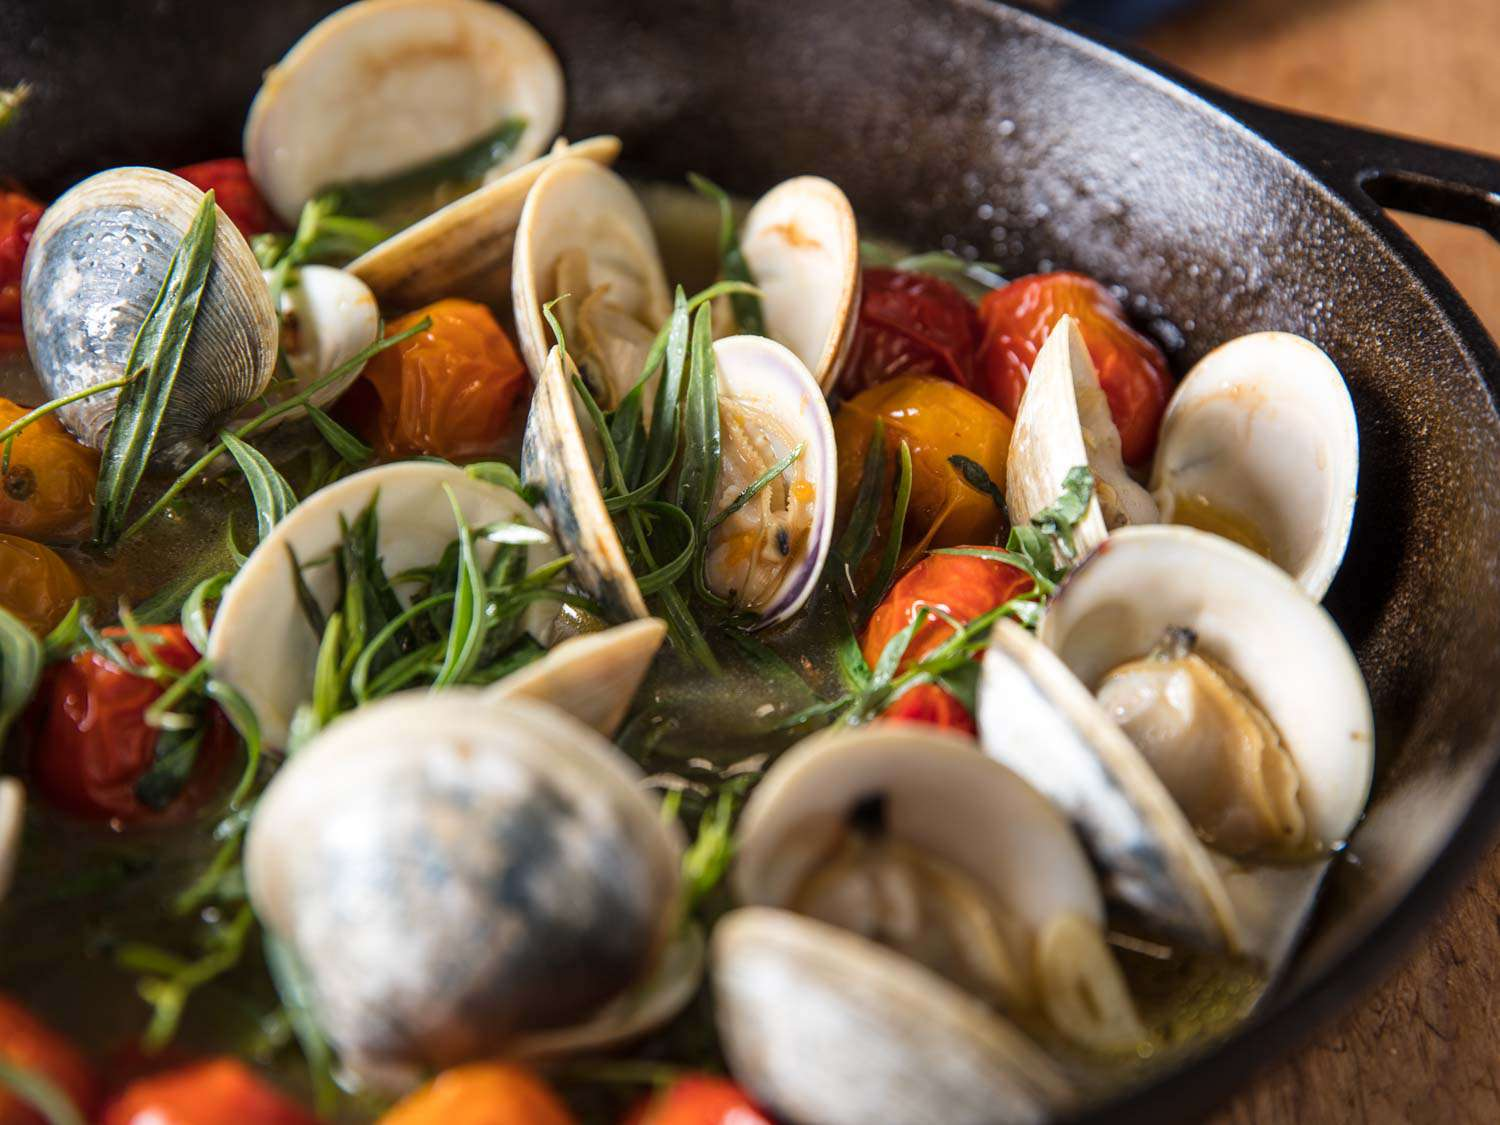 20180726-MHT-broiling-tomato-clams-vicky-wasik-14-